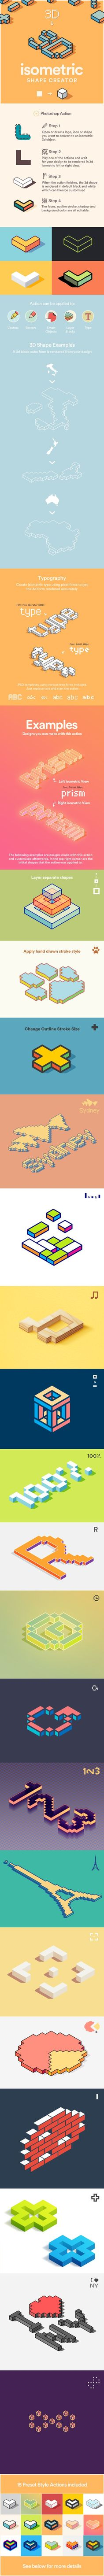 Buy Isometric Shape Creator by Roncq on GraphicRiver. Isometric Shape Creator This action renders your shape or object in isometric view. The Voxel output of th. Isometric Shapes, Isometric Art, Isometric Design, Web Design, Tool Design, Game Design, Vector Design, Lettering, Typography Design